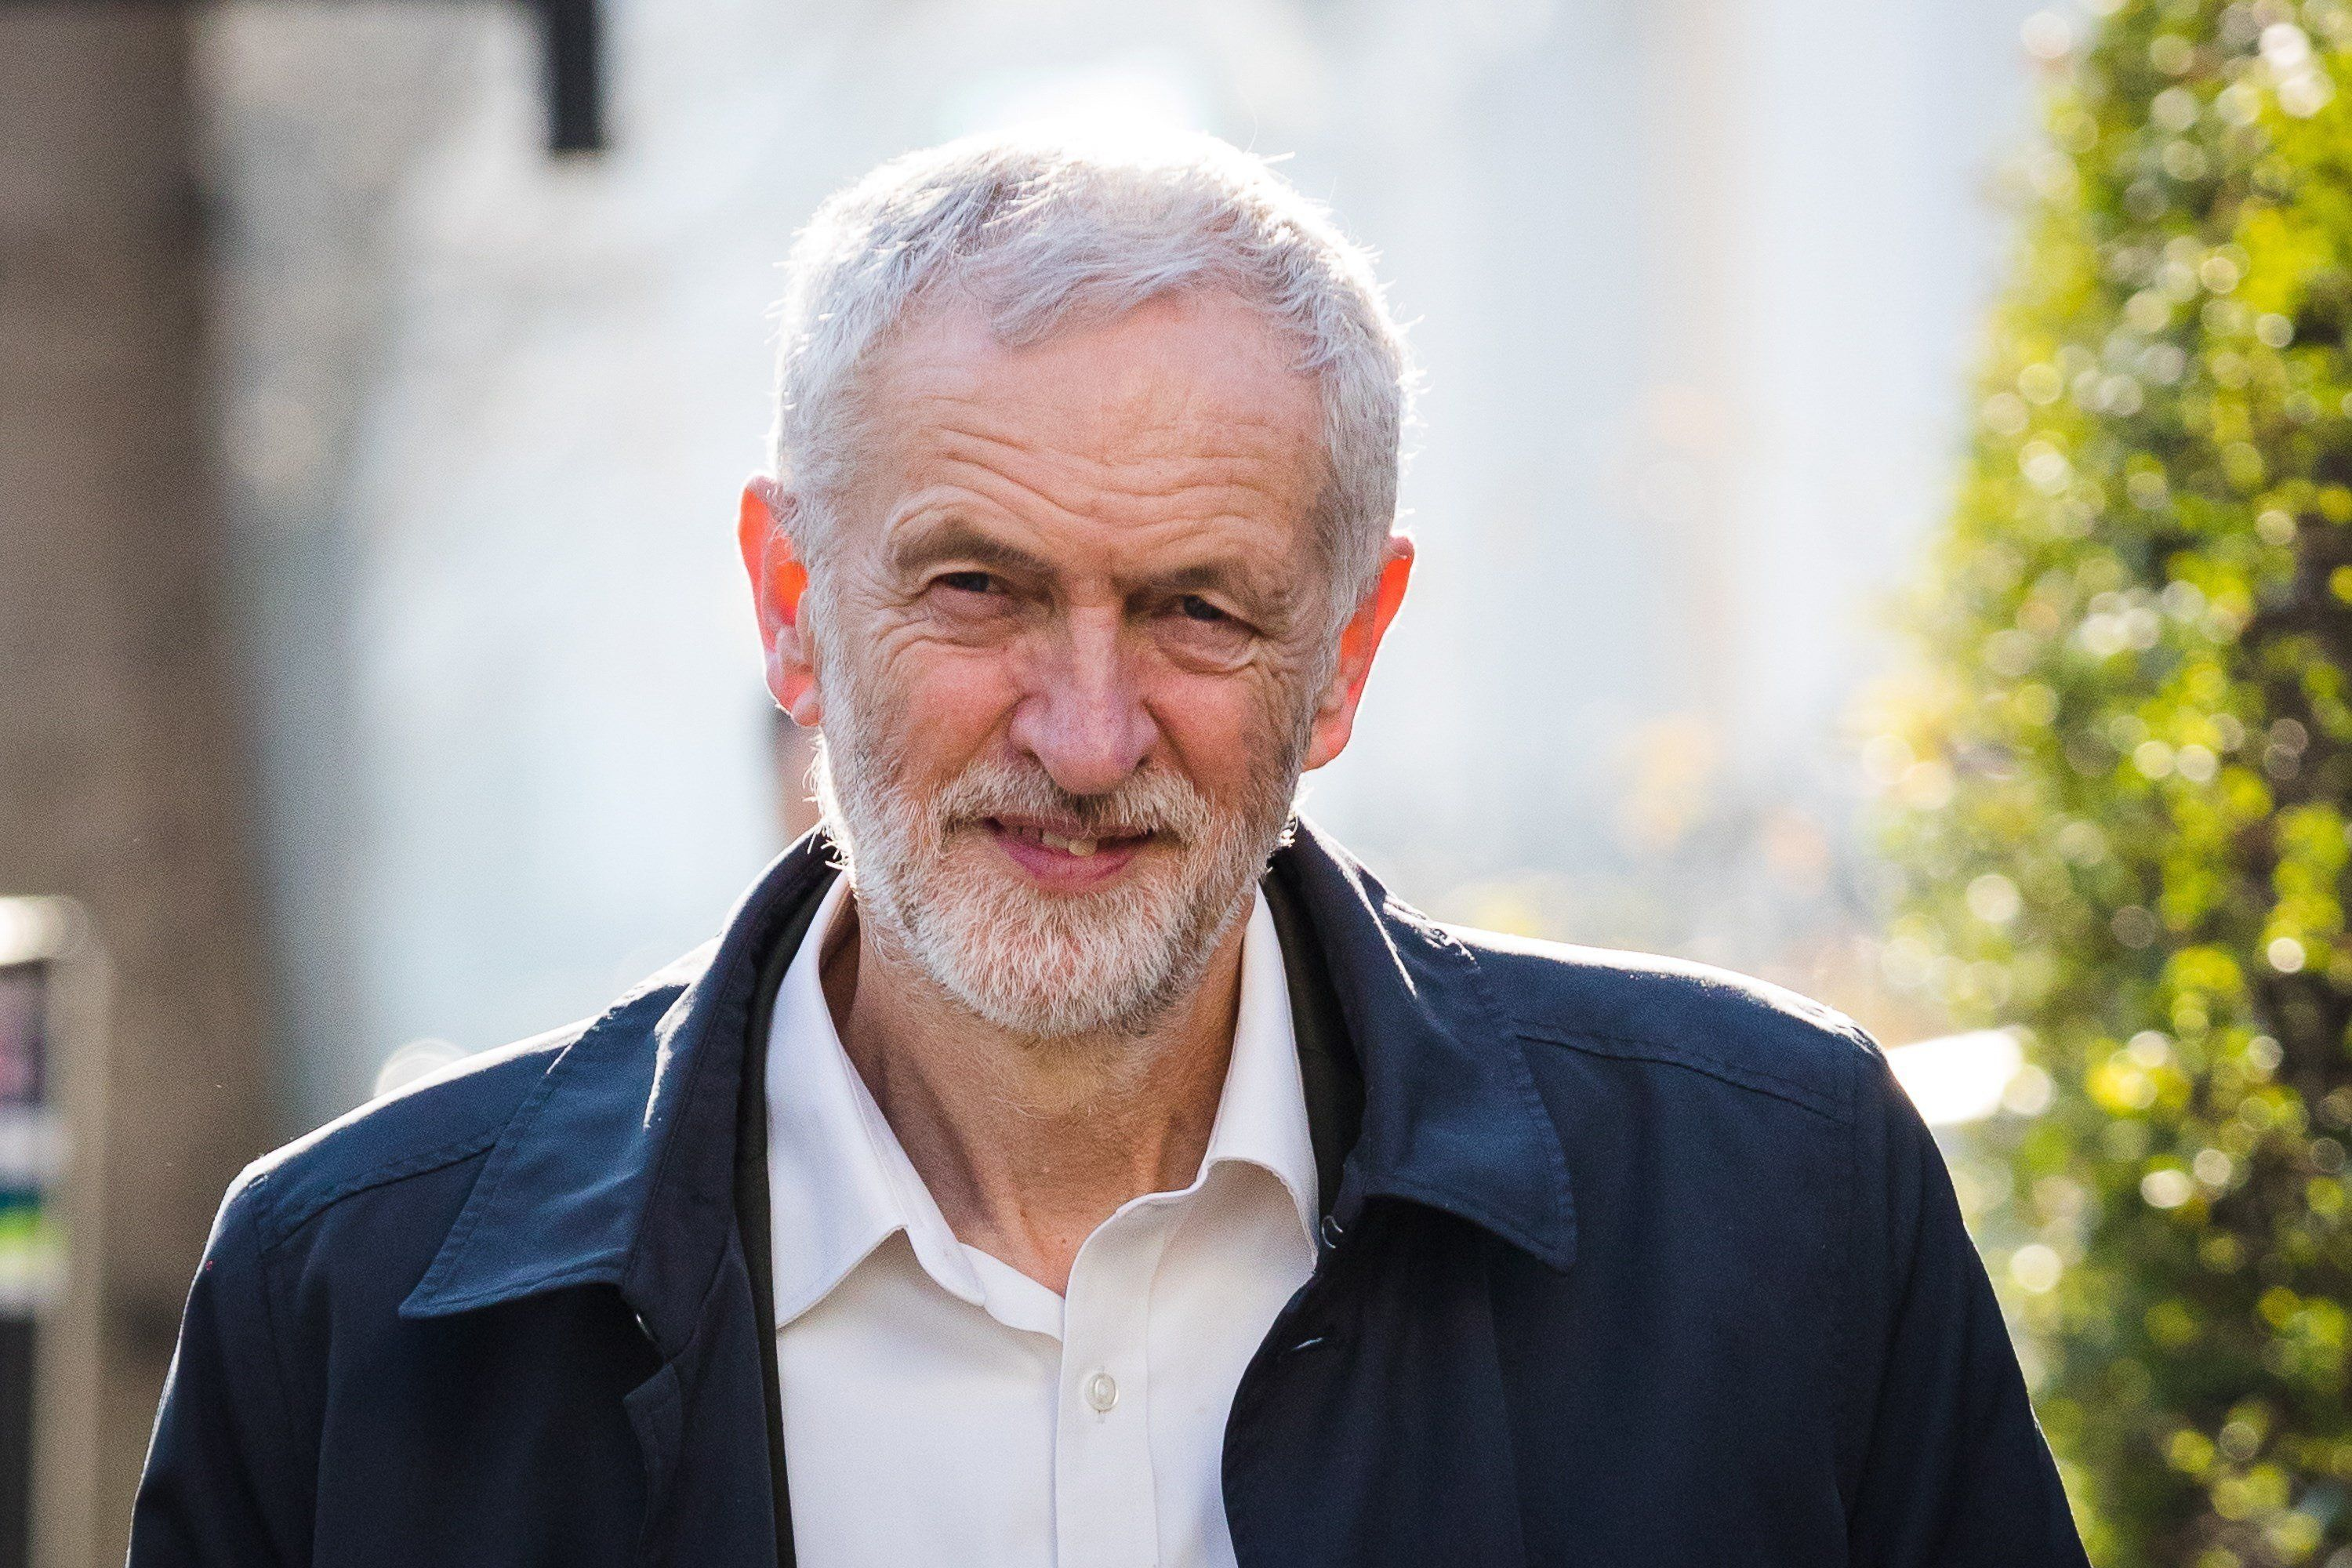 Jeremy Corbyn's Brexit vision defeated again by majority of 83